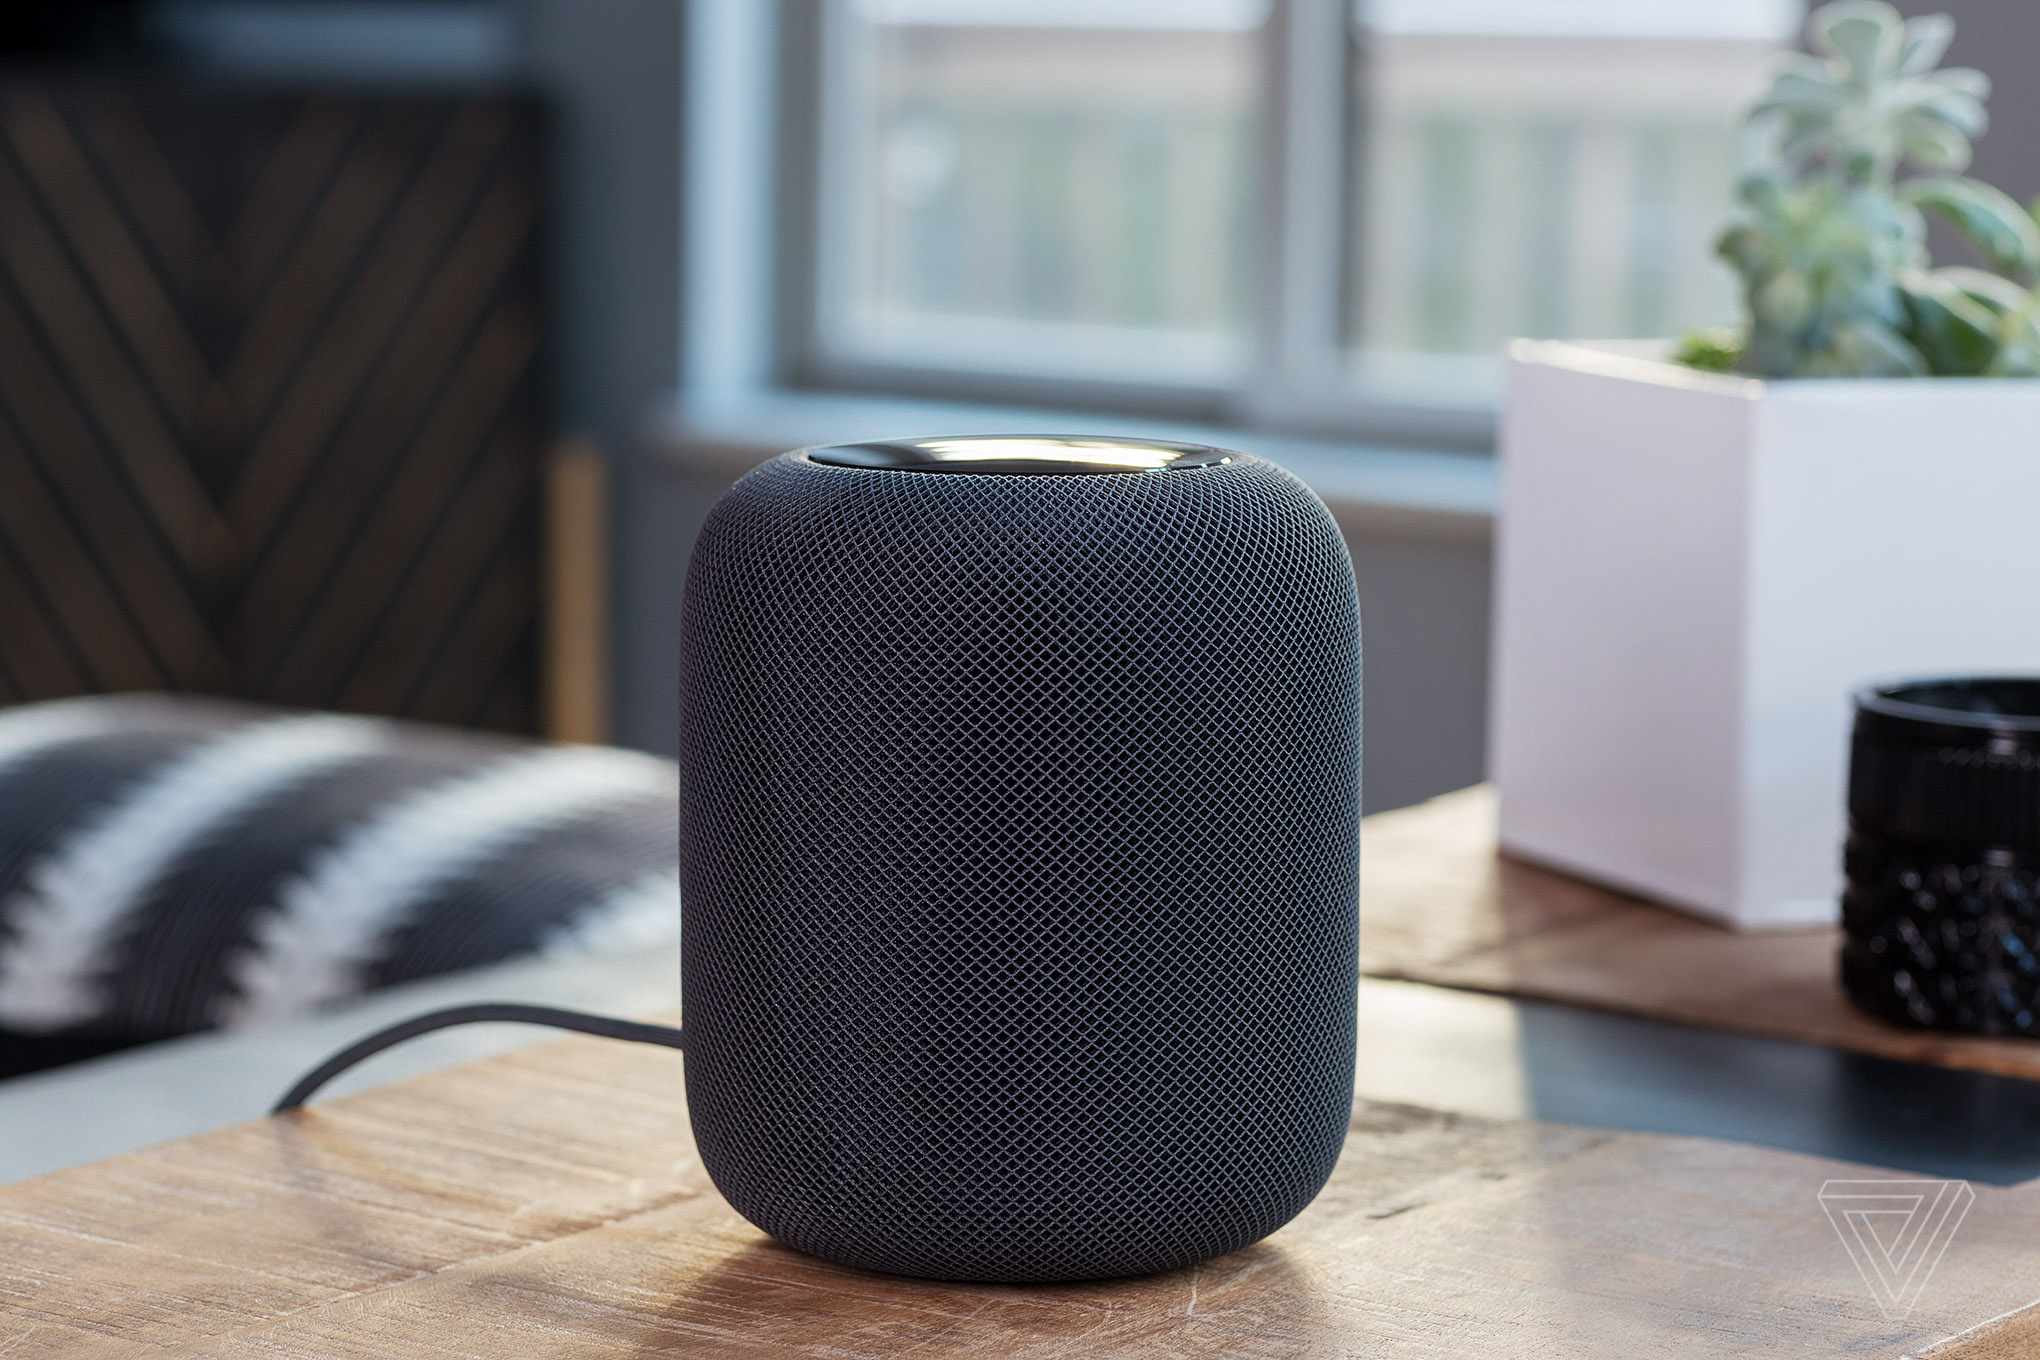 Homepod in a room